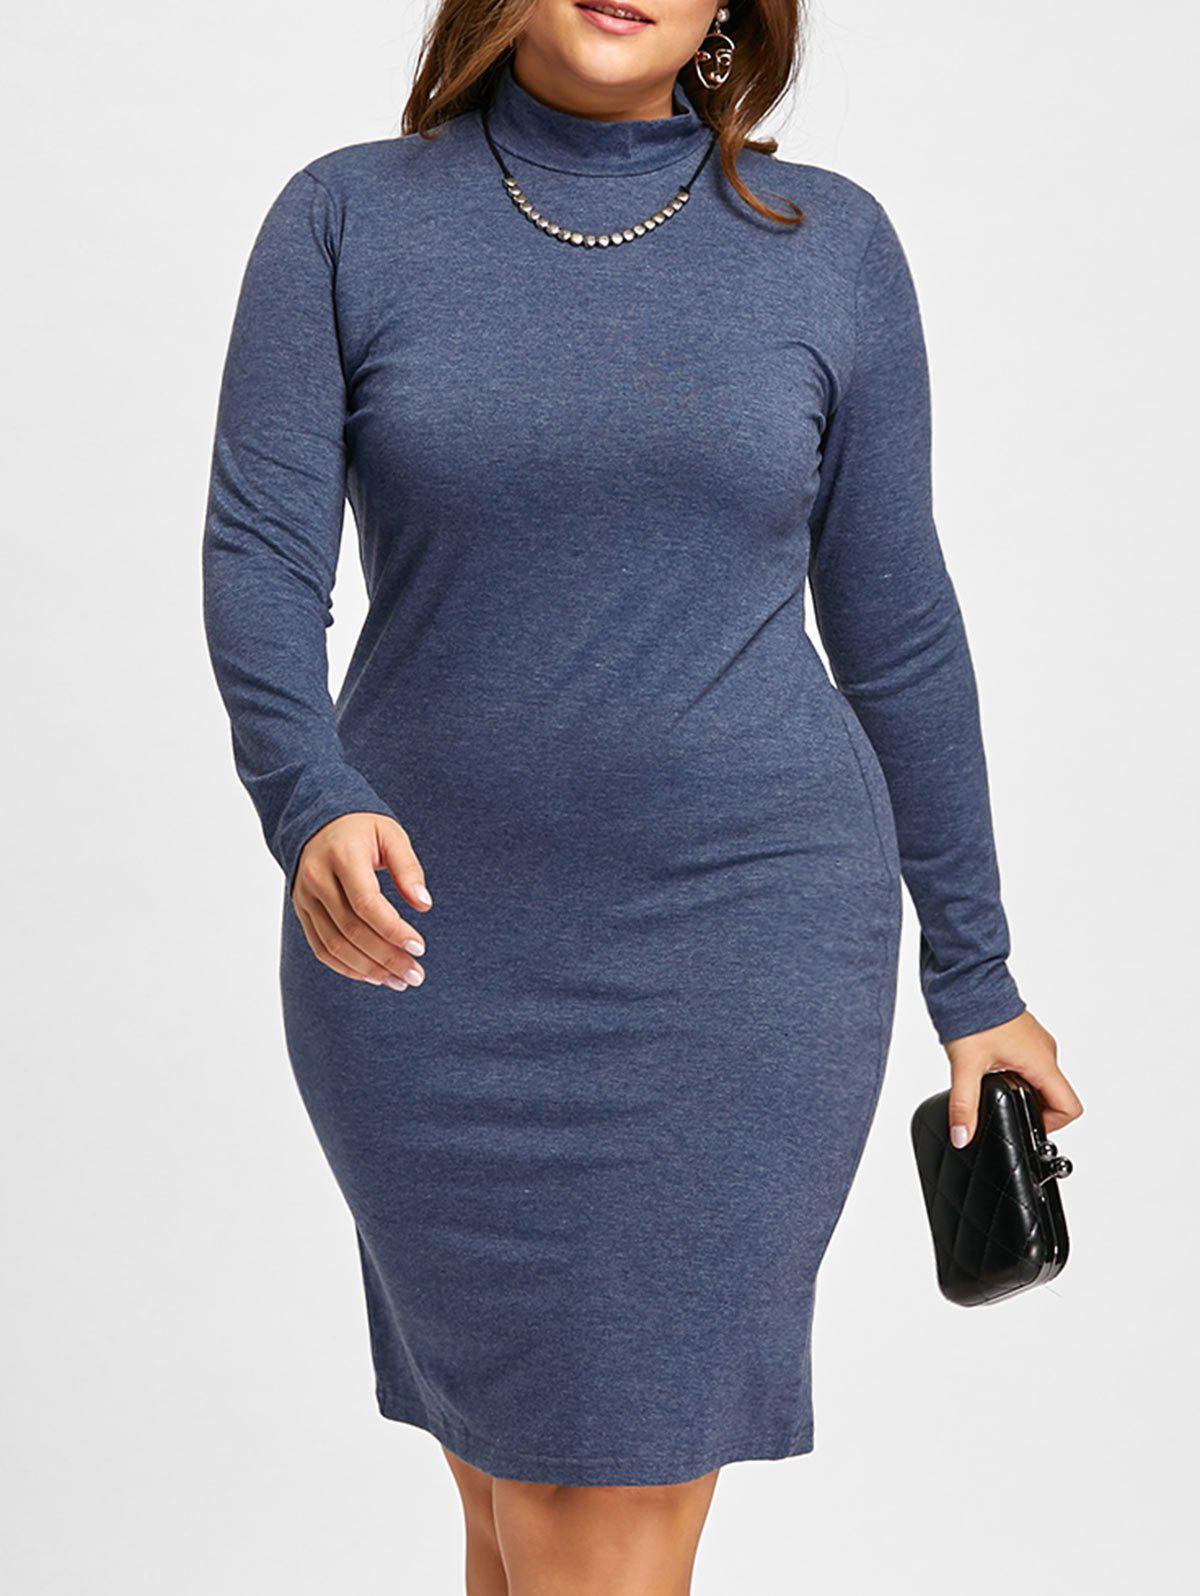 Plus Size Midi High Neck  Sheath Dress with SleevesWOMEN<br><br>Size: 6XL; Color: DEEP BLUE; Style: Work; Material: Cotton Blend,Polyester; Silhouette: Sheath; Dresses Length: Mid-Calf; Neckline: High Neck; Sleeve Length: Long Sleeves; Pattern Type: Solid,Solid Color; With Belt: No; Season: Fall,Winter; Weight: 0.3600kg; Package Contents: 1 x Dress;